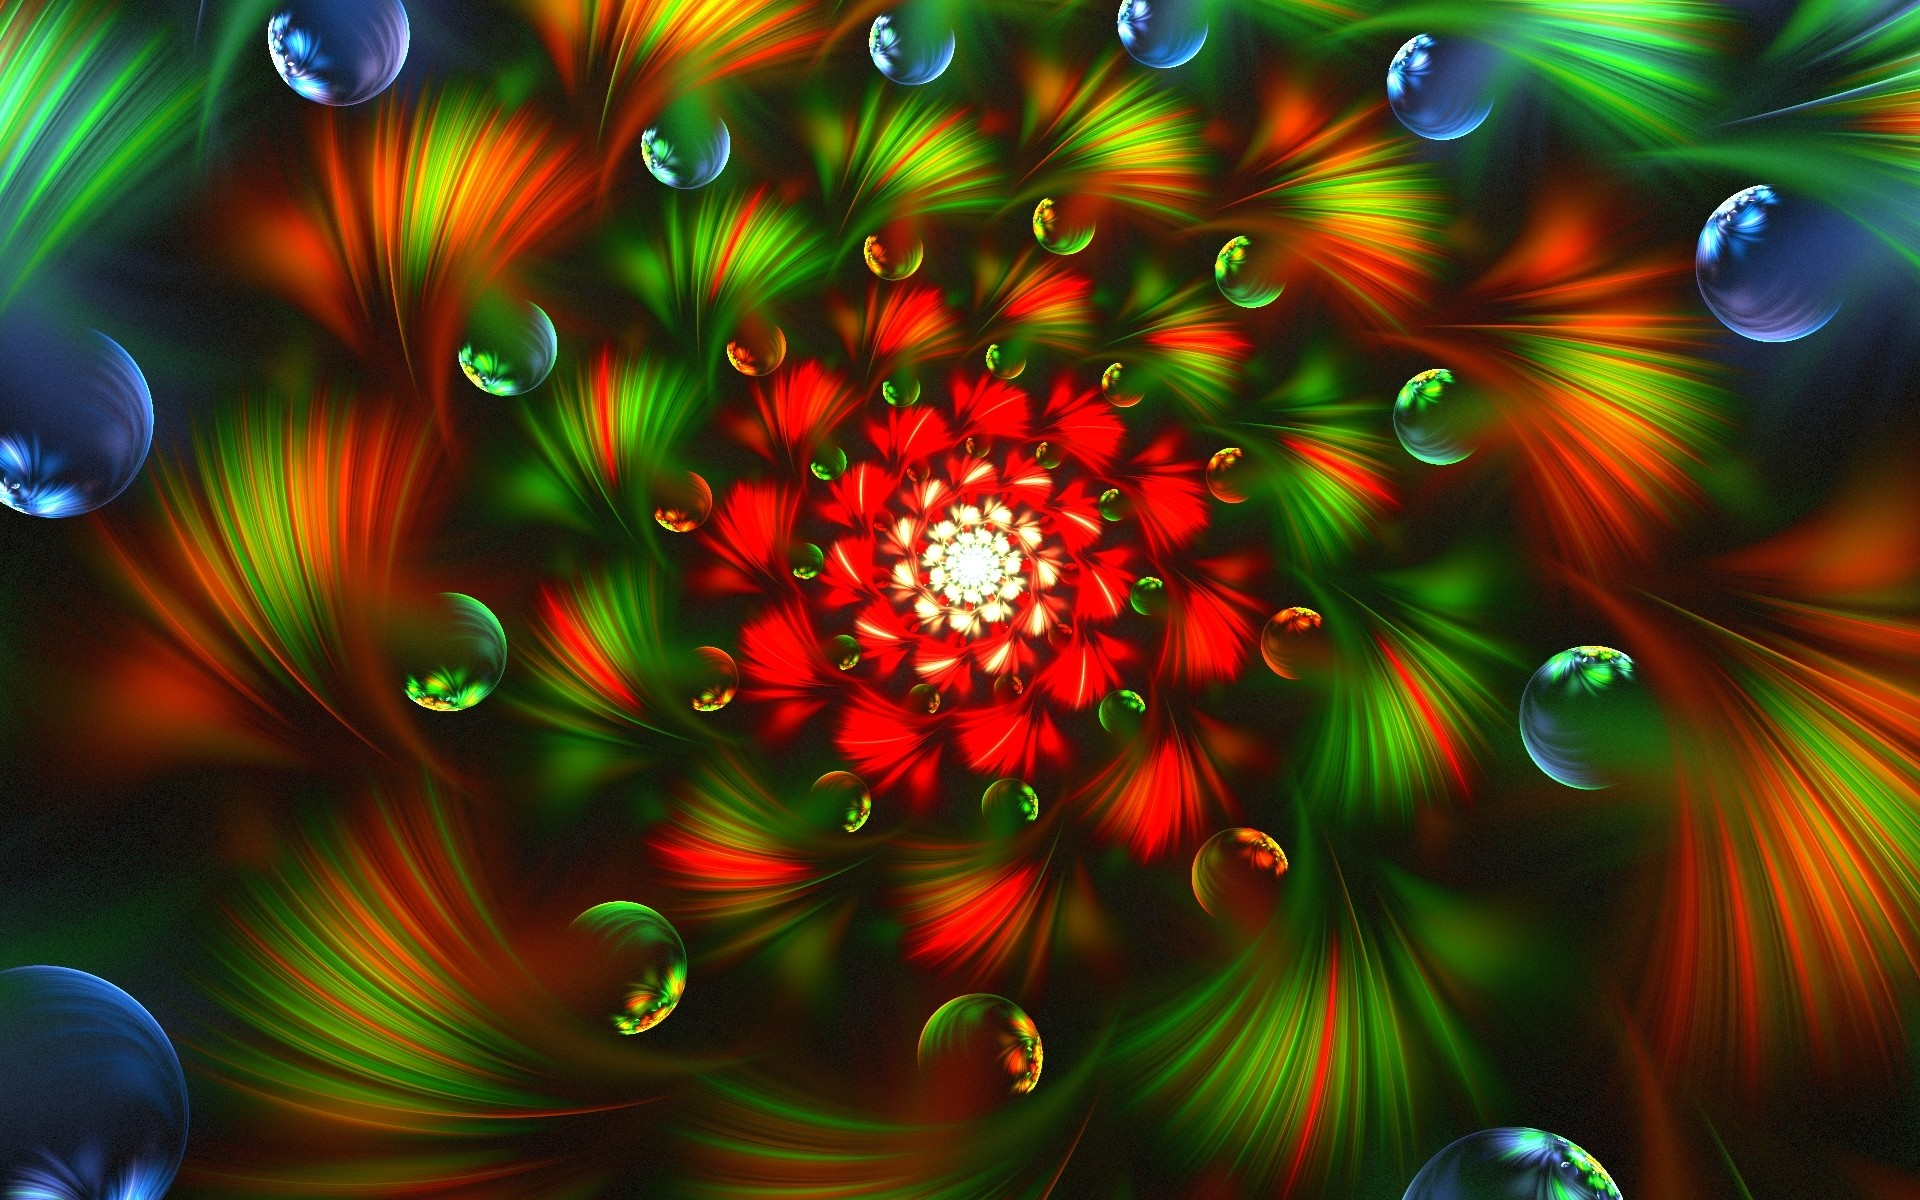 3d abstract fractal colorful bright wallpaper.